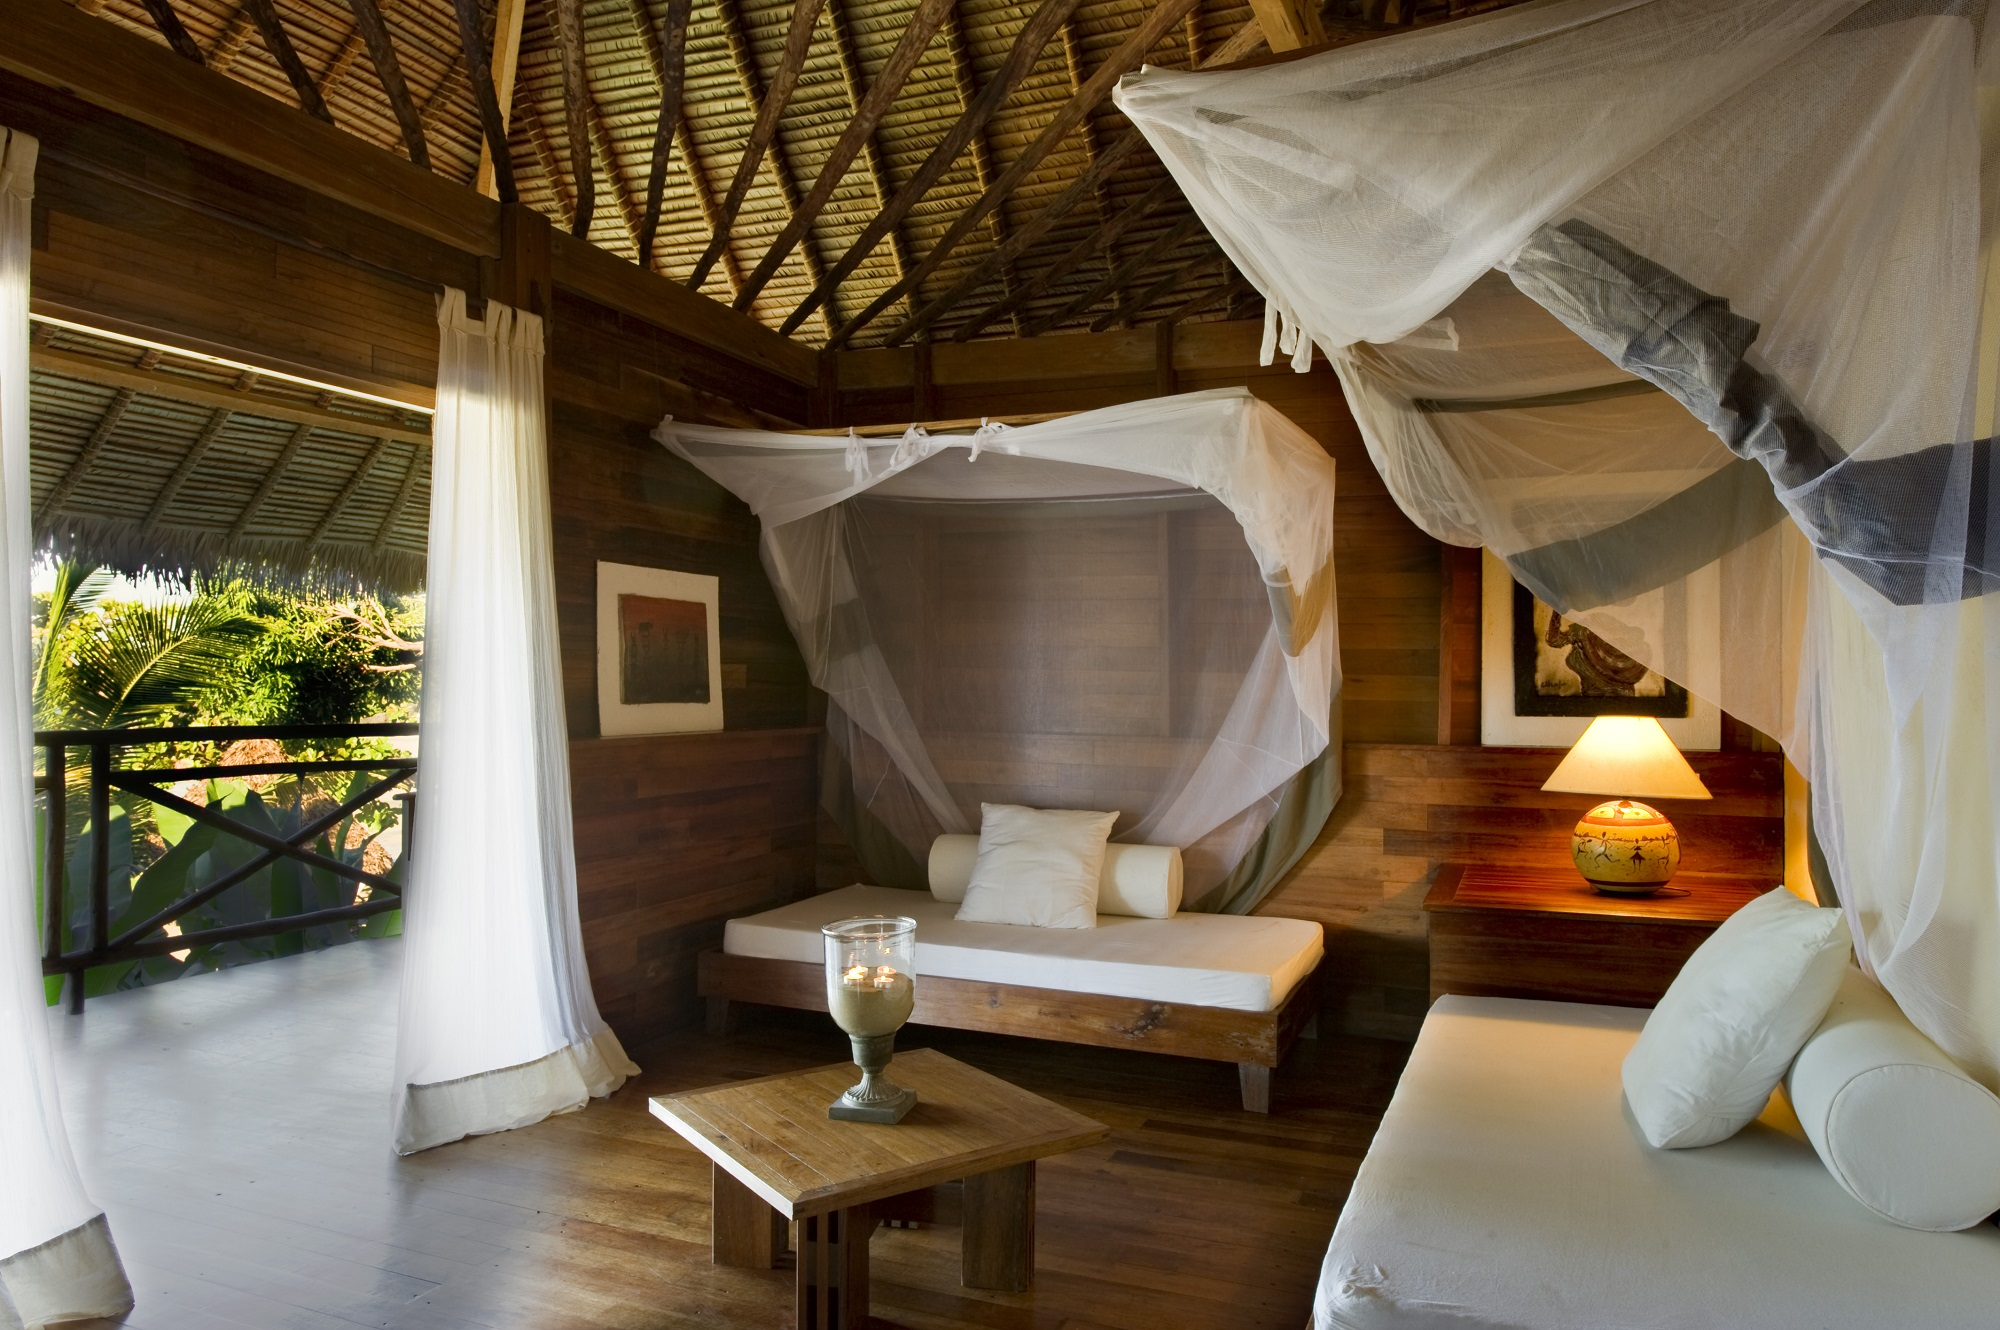 Tsara-komba-lodge-nosy-be-madagascar-wadi-destination-inside-lodge.jpg